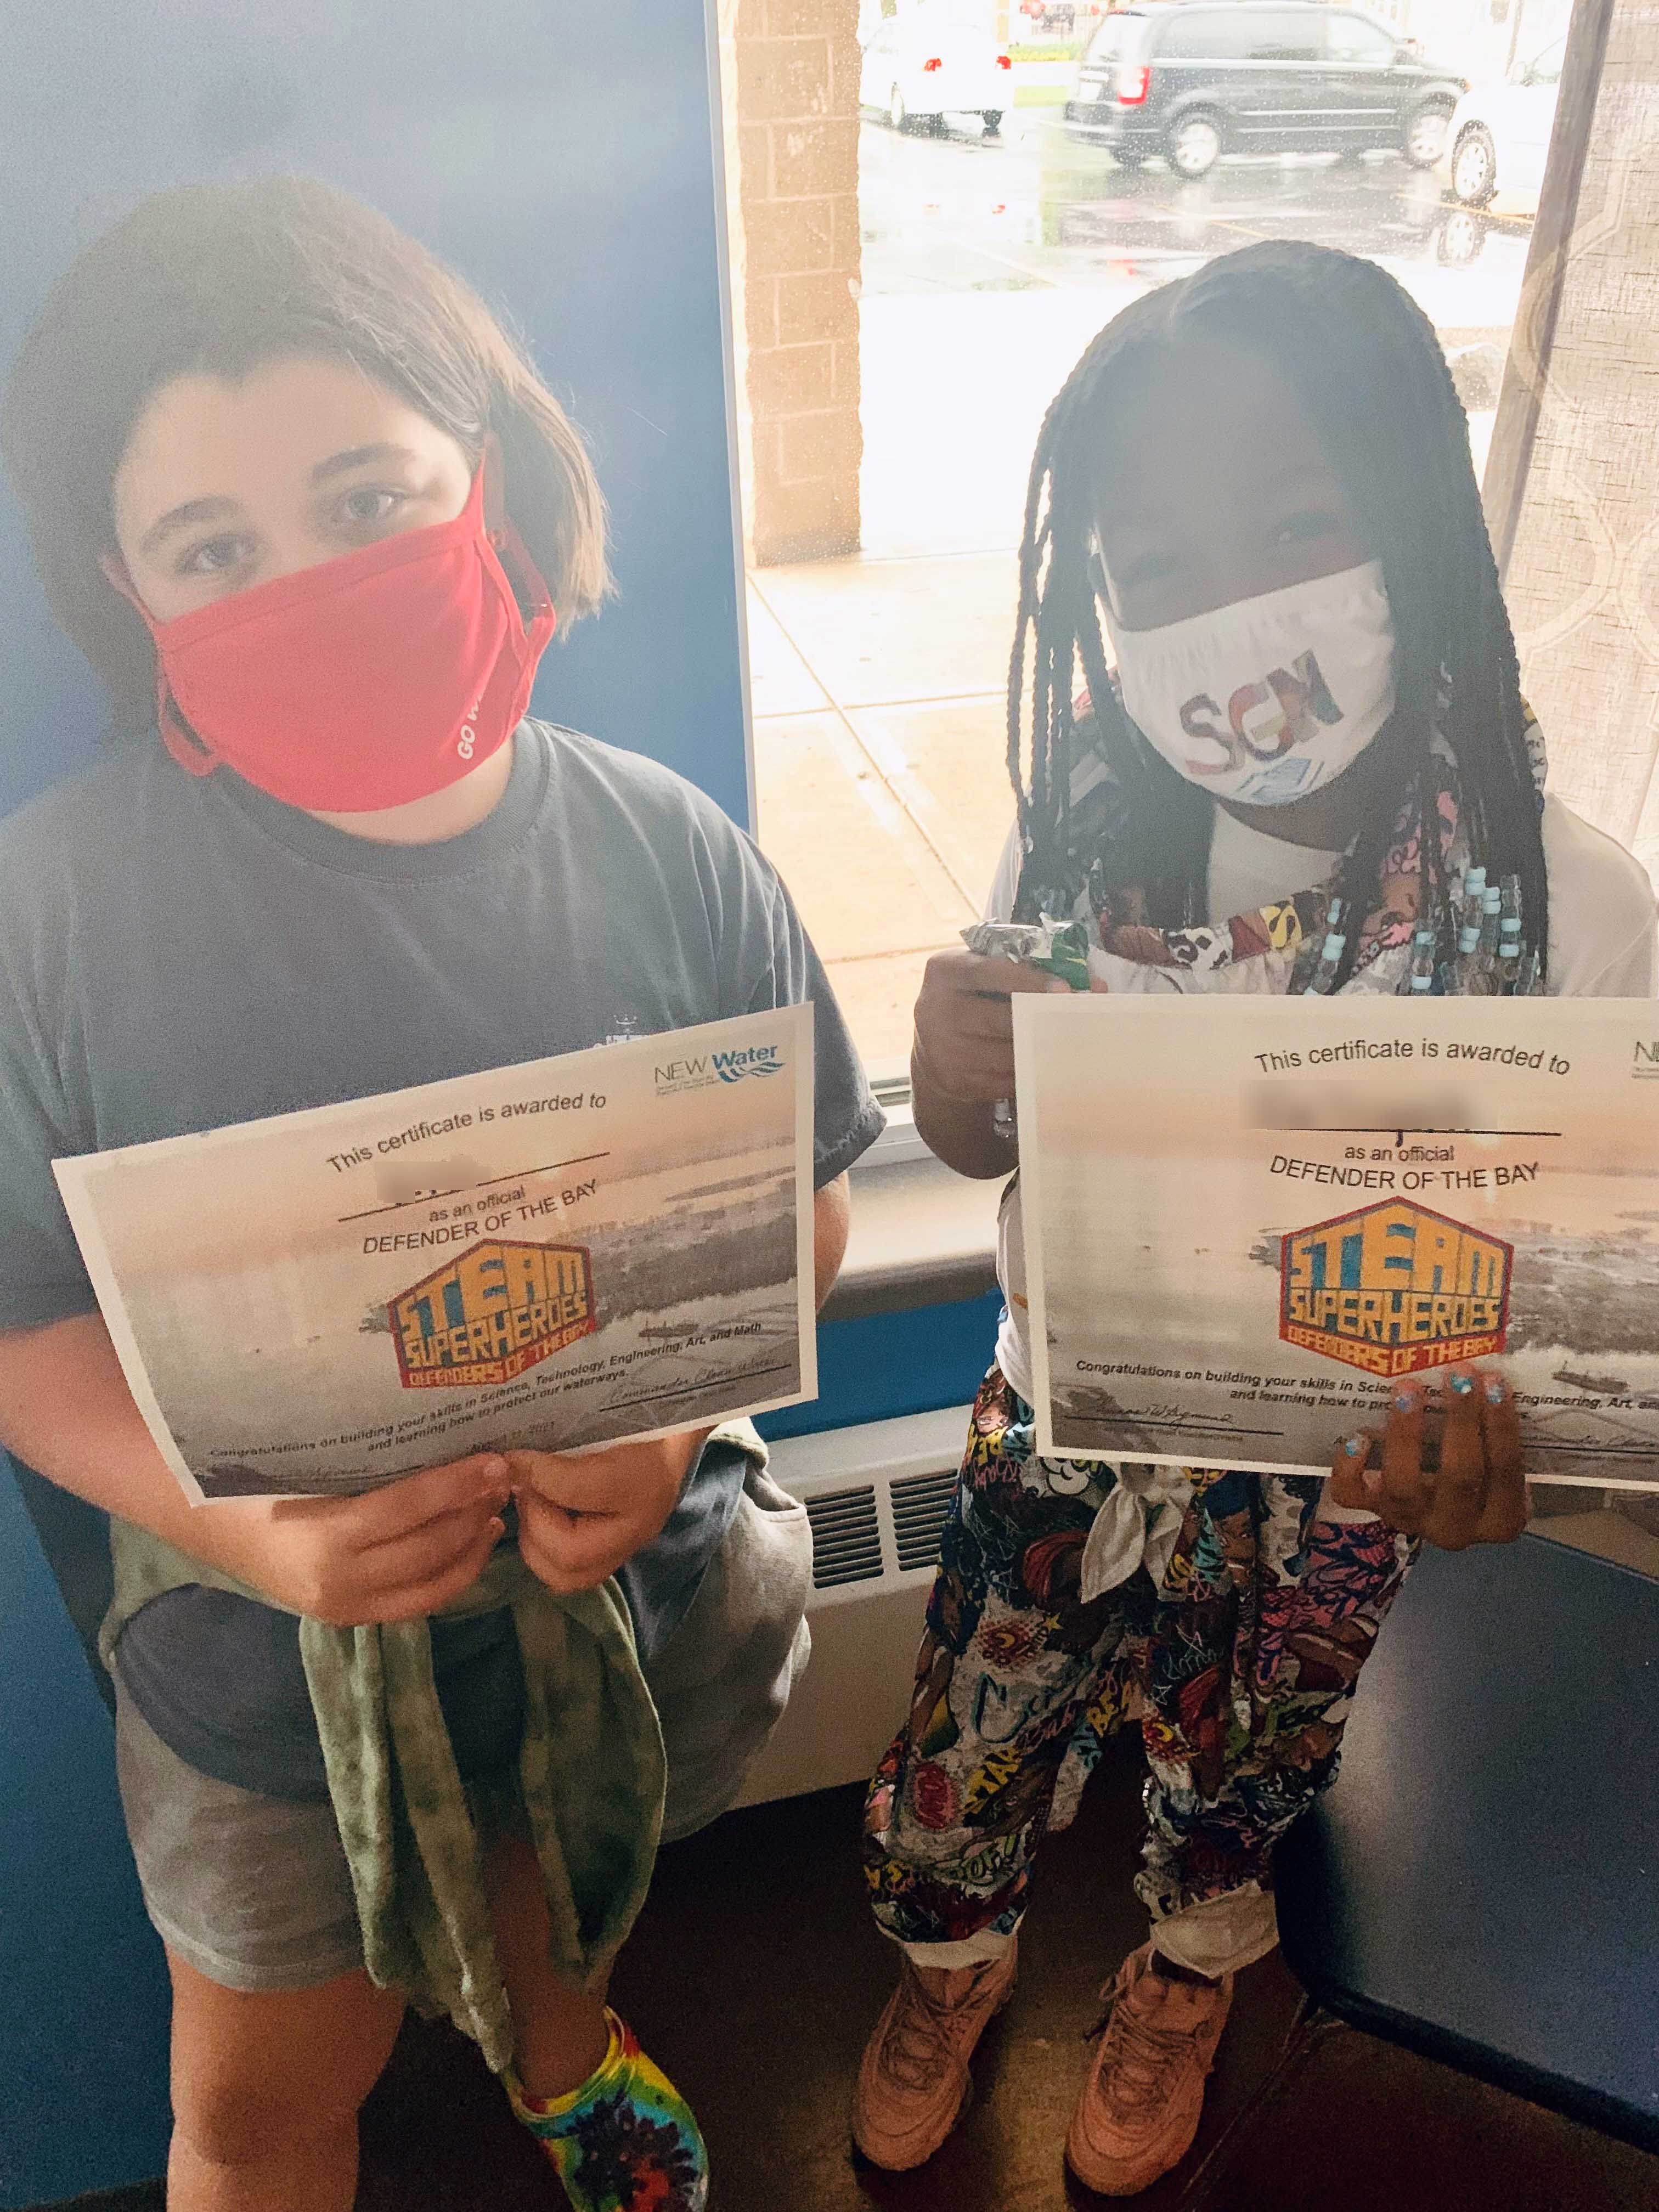 Girls with Certificates - names blurred